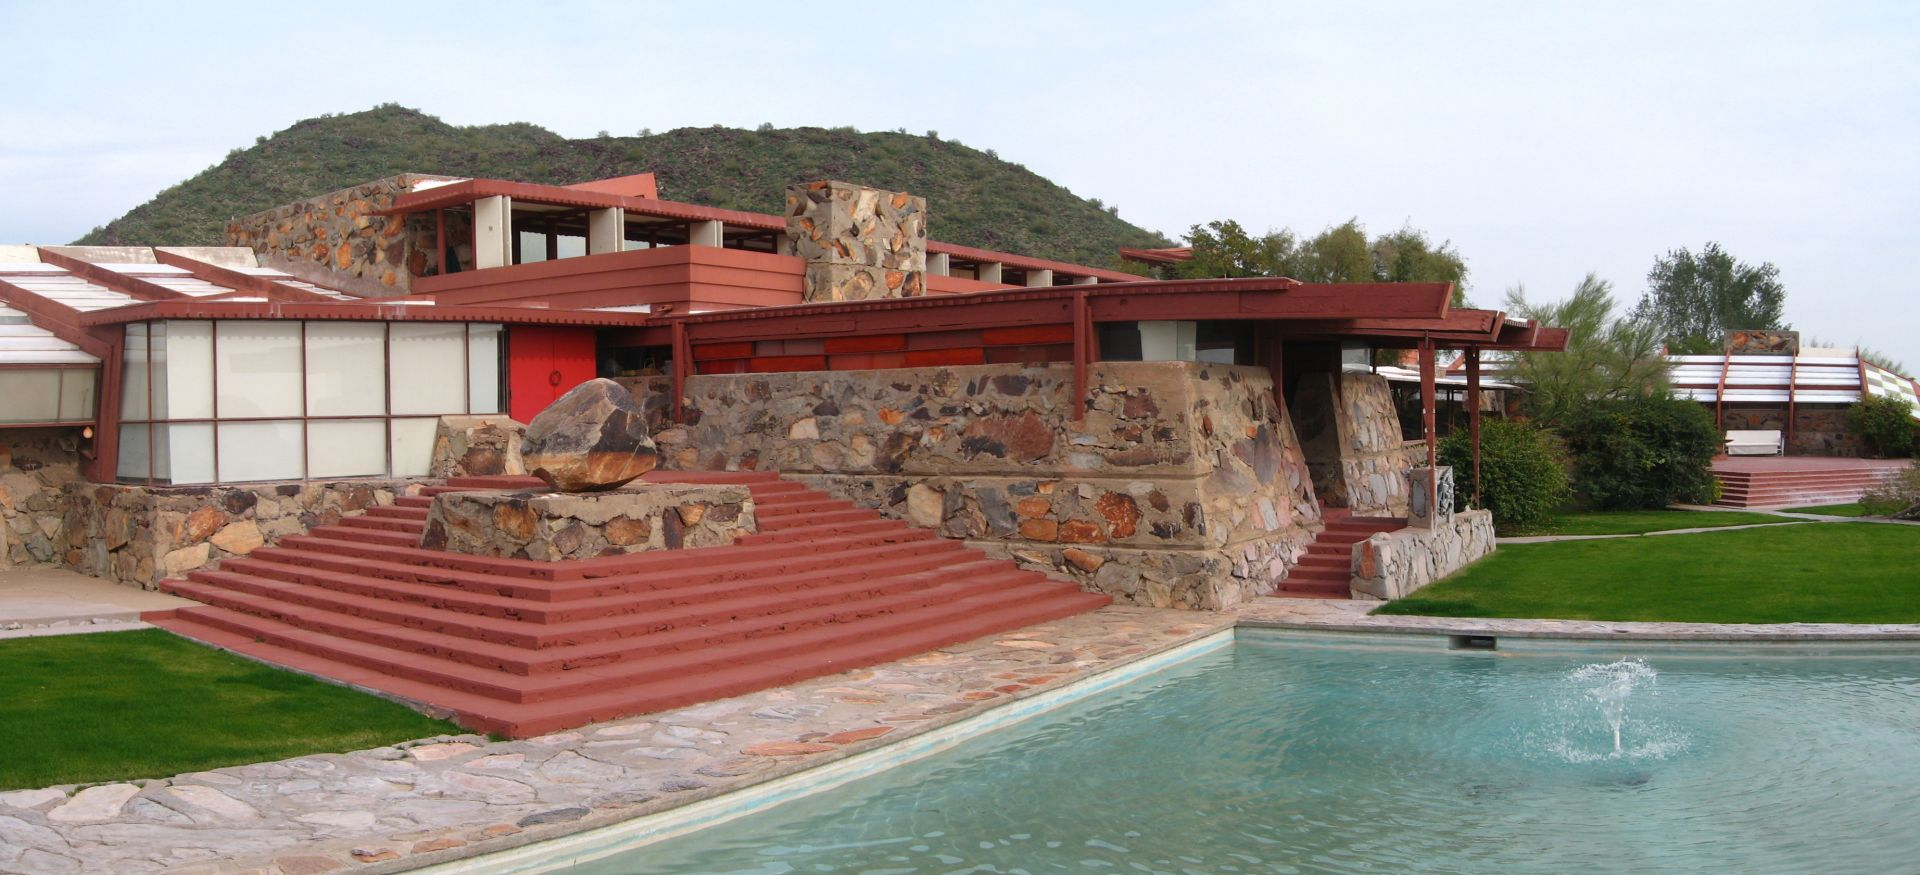 Frank Lloyd Wright's famed studio and residence, Taliesin West.